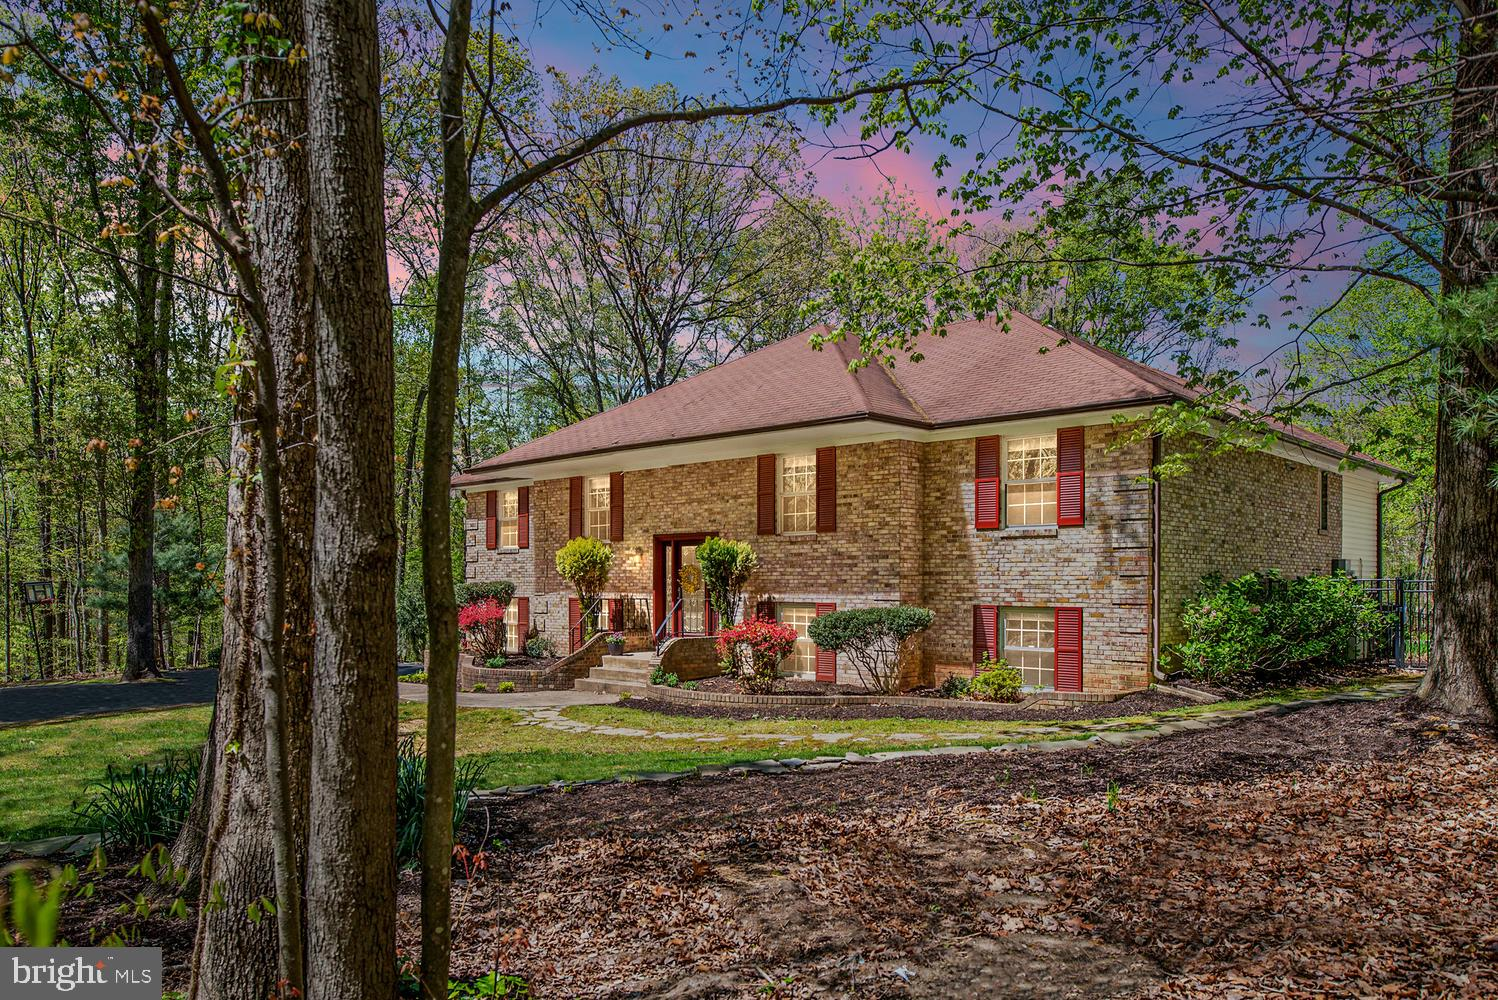 Welcome home! Charming updated home with 4 bedroom 3 full baths nestled on 1.82 acres in enchanting Woodbine Woods. Lovely professional landscaped yard with beautiful hardscaped finishes in the backyard. Open floorplan with formal sitting room, dining room, and a kitchen that opens to family room. Off the family room there is a screened porch over-looking the backyard and pool. Family room has a wood burning fireplace great for those cold winter nights. There is a large deck off the kitchen for grilling and entertaining after a long day. The kitchen has two ovens, extra ice maker, large pantry, stainless steel appliances, custom cabinetry, and granite counters. All bedrooms have closet systems for convenience and ease. All three bathroom have been newly remodeled. The lower level is great for entertaining! Large recreation room with space for home theatre, pool table and a dry bar area. Basement has utility room with newly purchased washer and dryer. Basement has a walk-out door to the backyard. Outside are two storage shed. Gorgeous in-ground pool great for those hot summer days.  Absolutely stunning home and property. No HOA. Sought after school district, Coles ES, Benton Middle and Colgan High. Close to commuter routes, 95, 66, and the Manassas VRE station is 7.5 miles away.